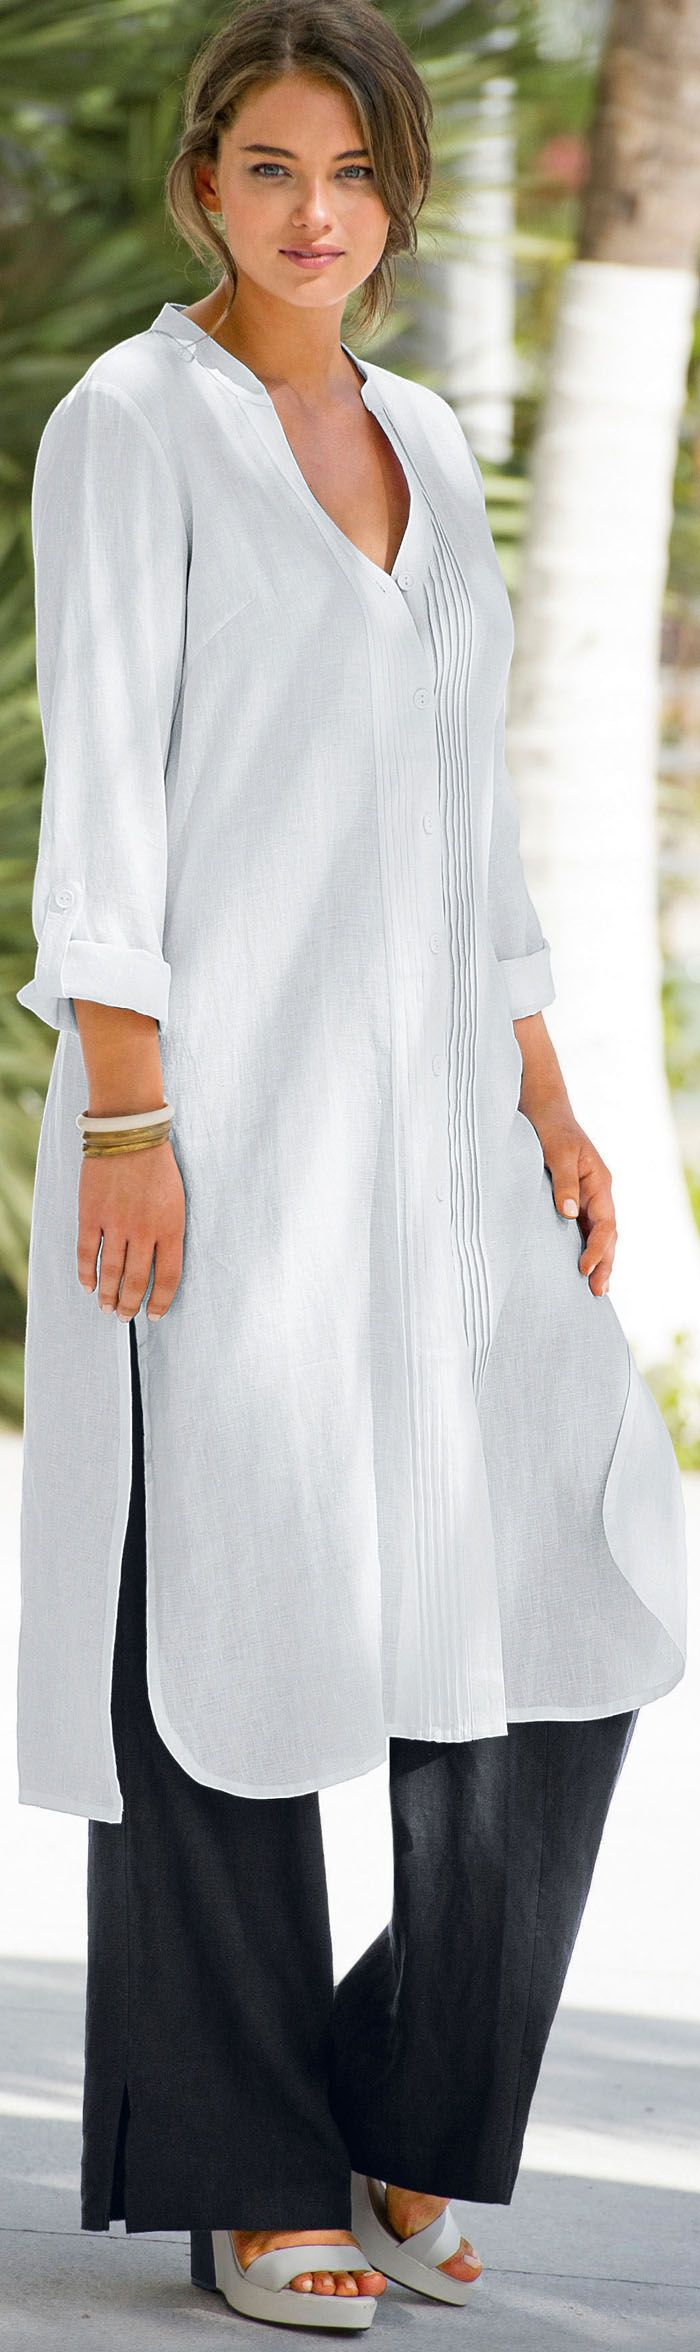 This is similar to a kurti tunic. Beach wedding dress alternatives for boho brides - CLICK HERE TO READ: www.shopcost.co.uk/women+tunics